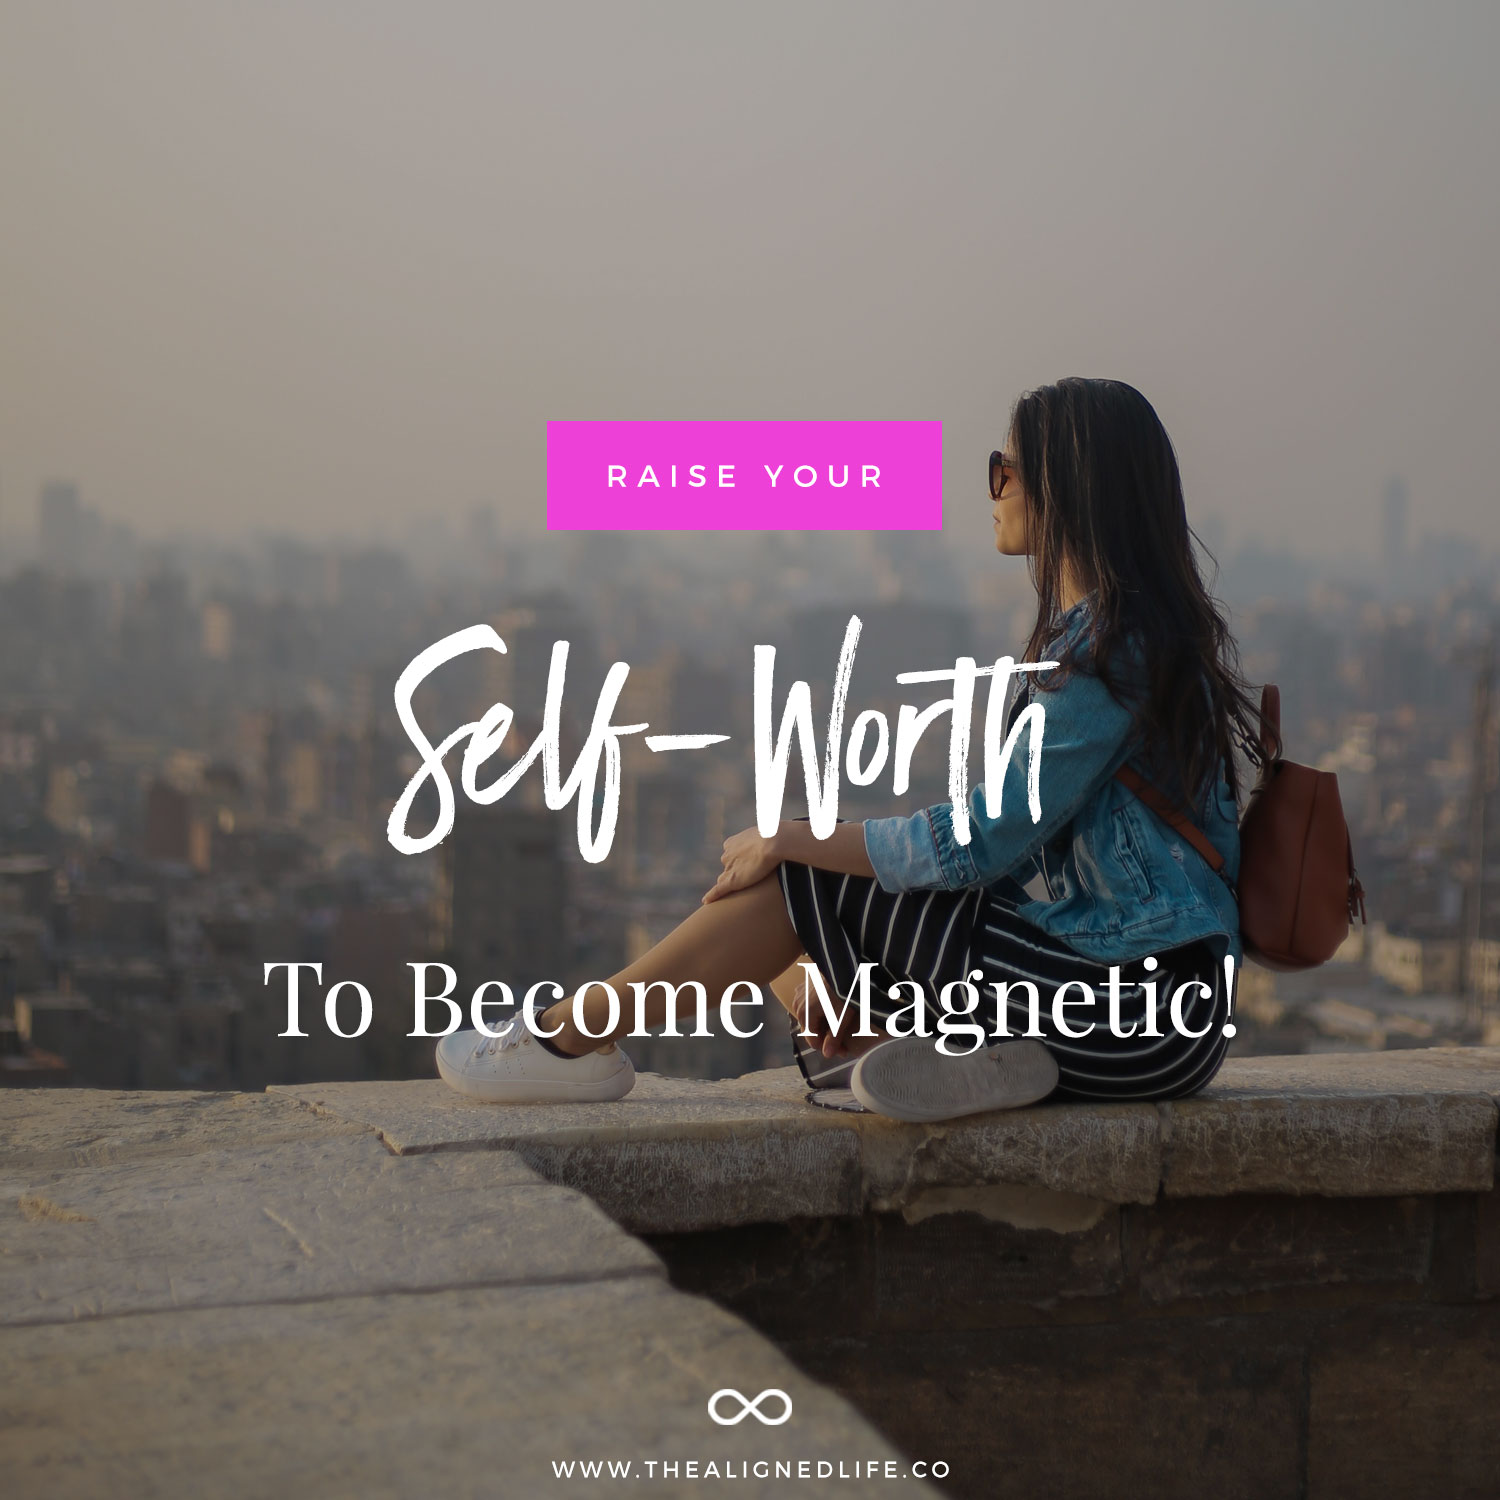 Raise Your Self-Worth To Become Magnetic